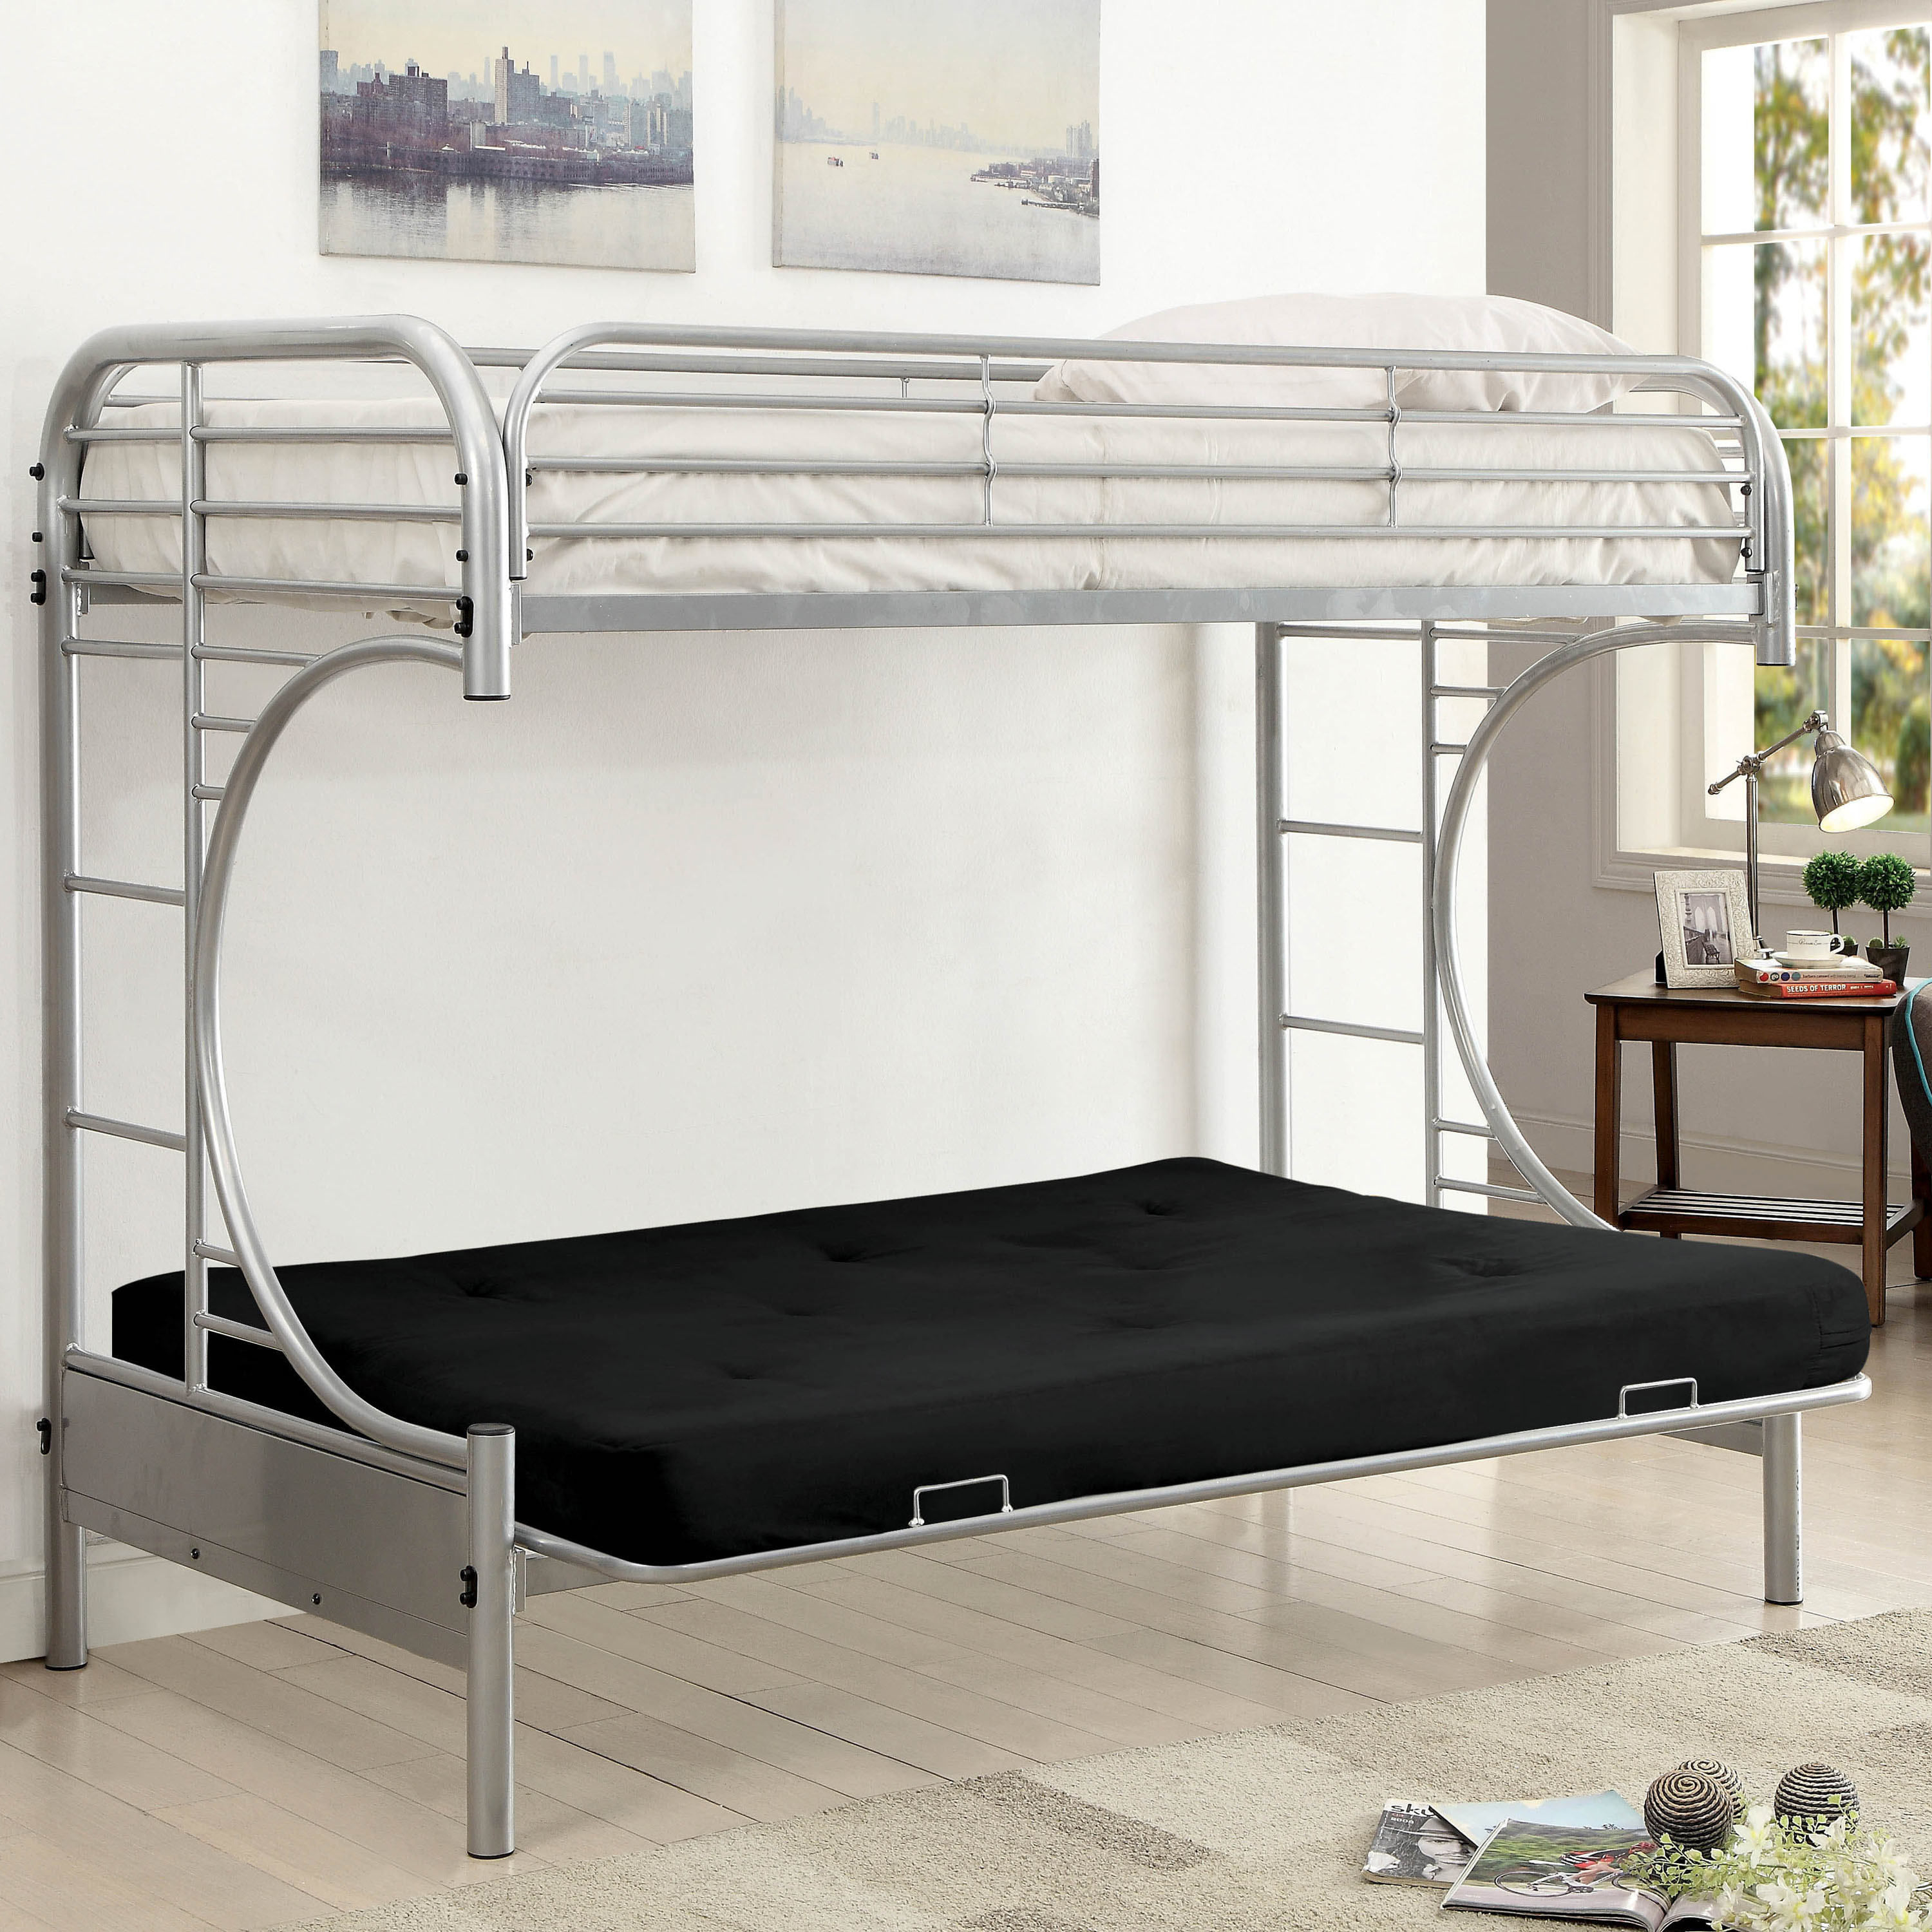 with garden futons product today base dante shipping contemporary loft home free of furniture overstock futon bunk bed america